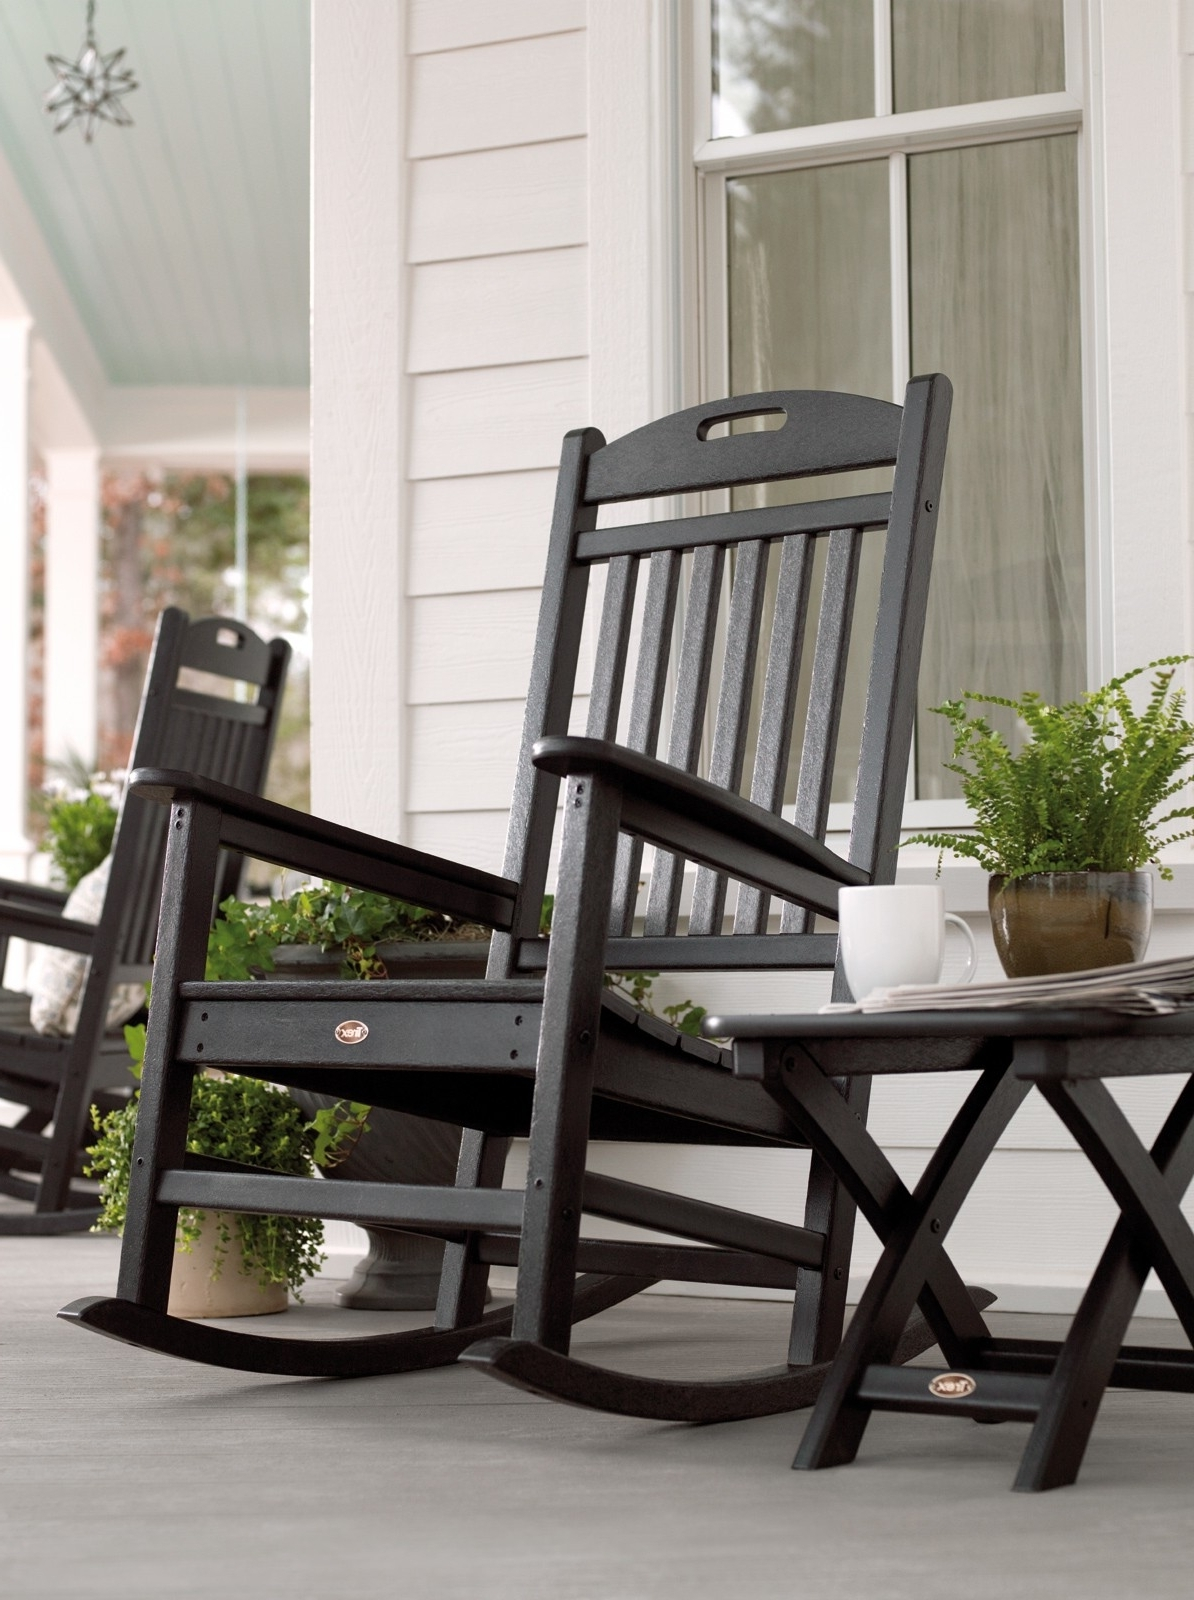 Rocking Chairs For Outside With Well Liked Patio & Garden : Outdoor Rocking Chair Seat Cushions Outdoor Rocking (View 2 of 20)